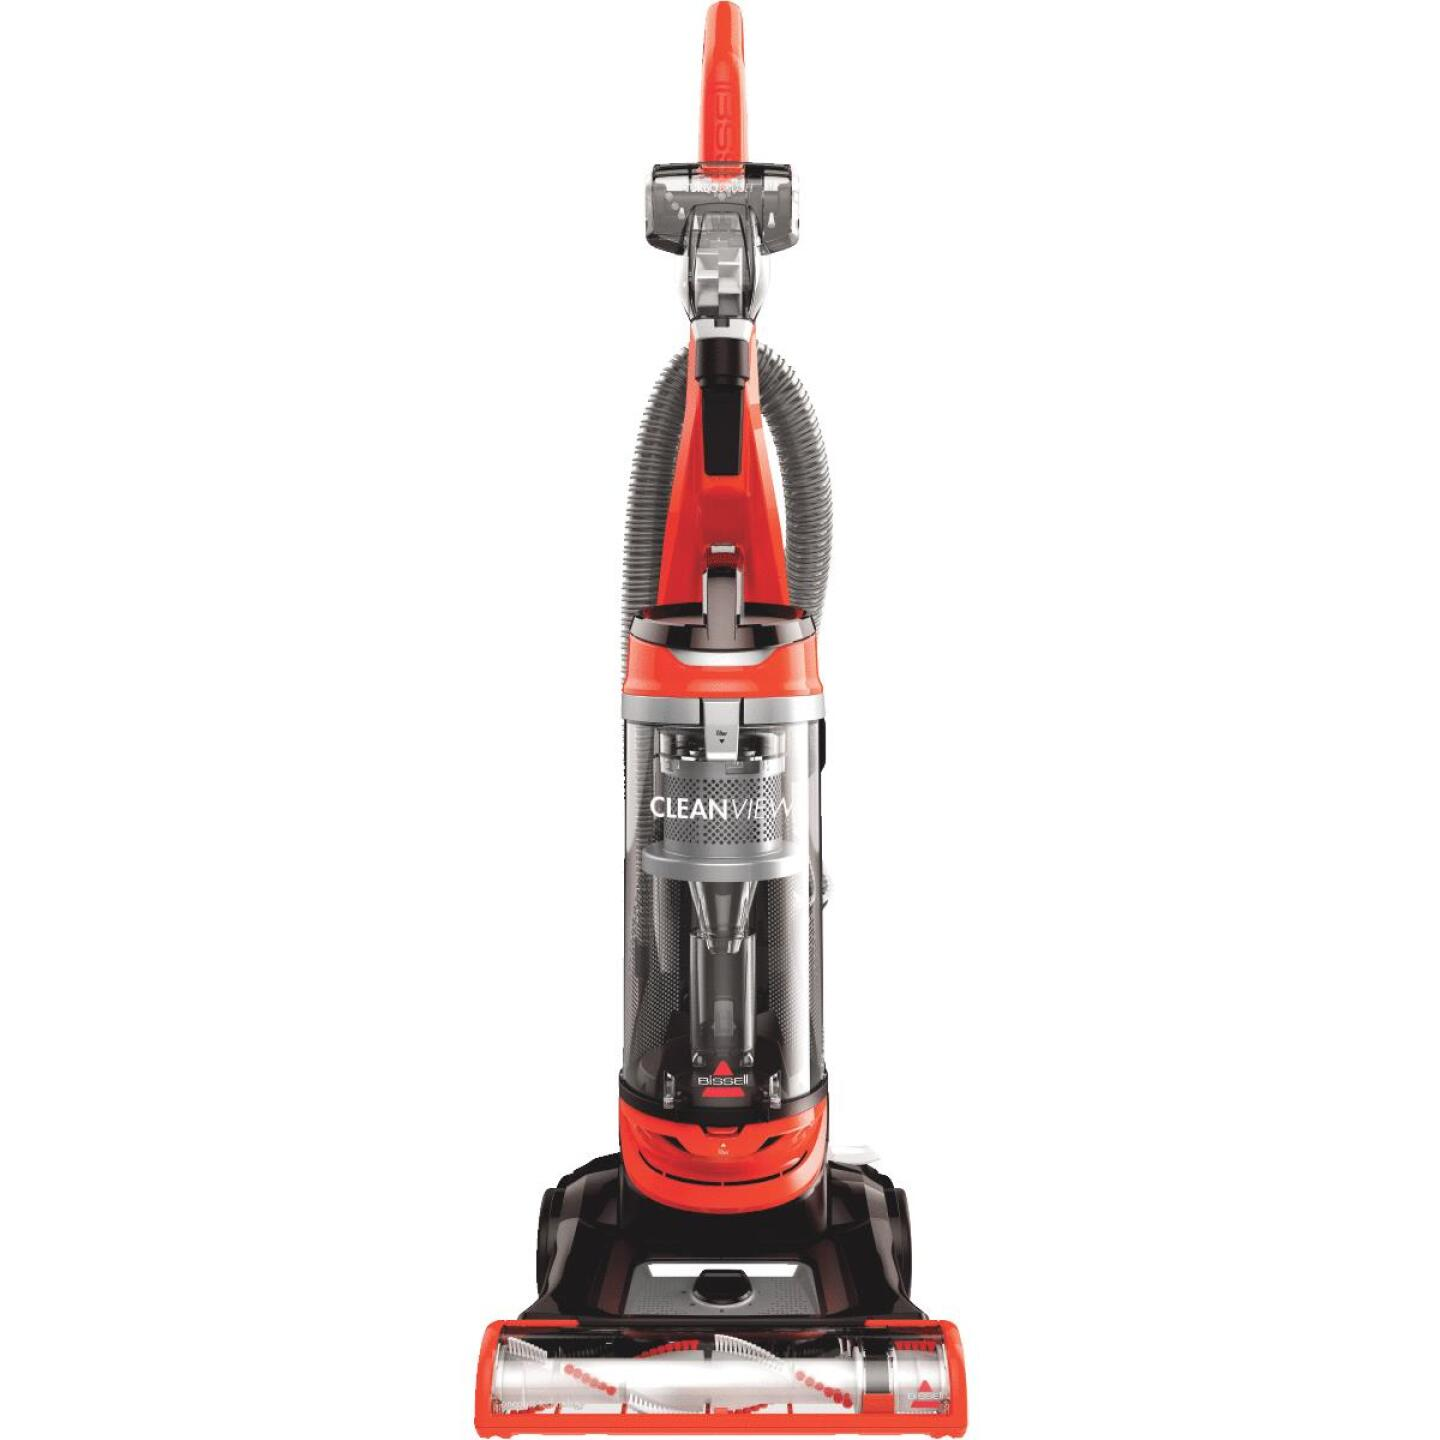 Bissell CleanView Bagless Upright Vacuum Cleaner Image 1